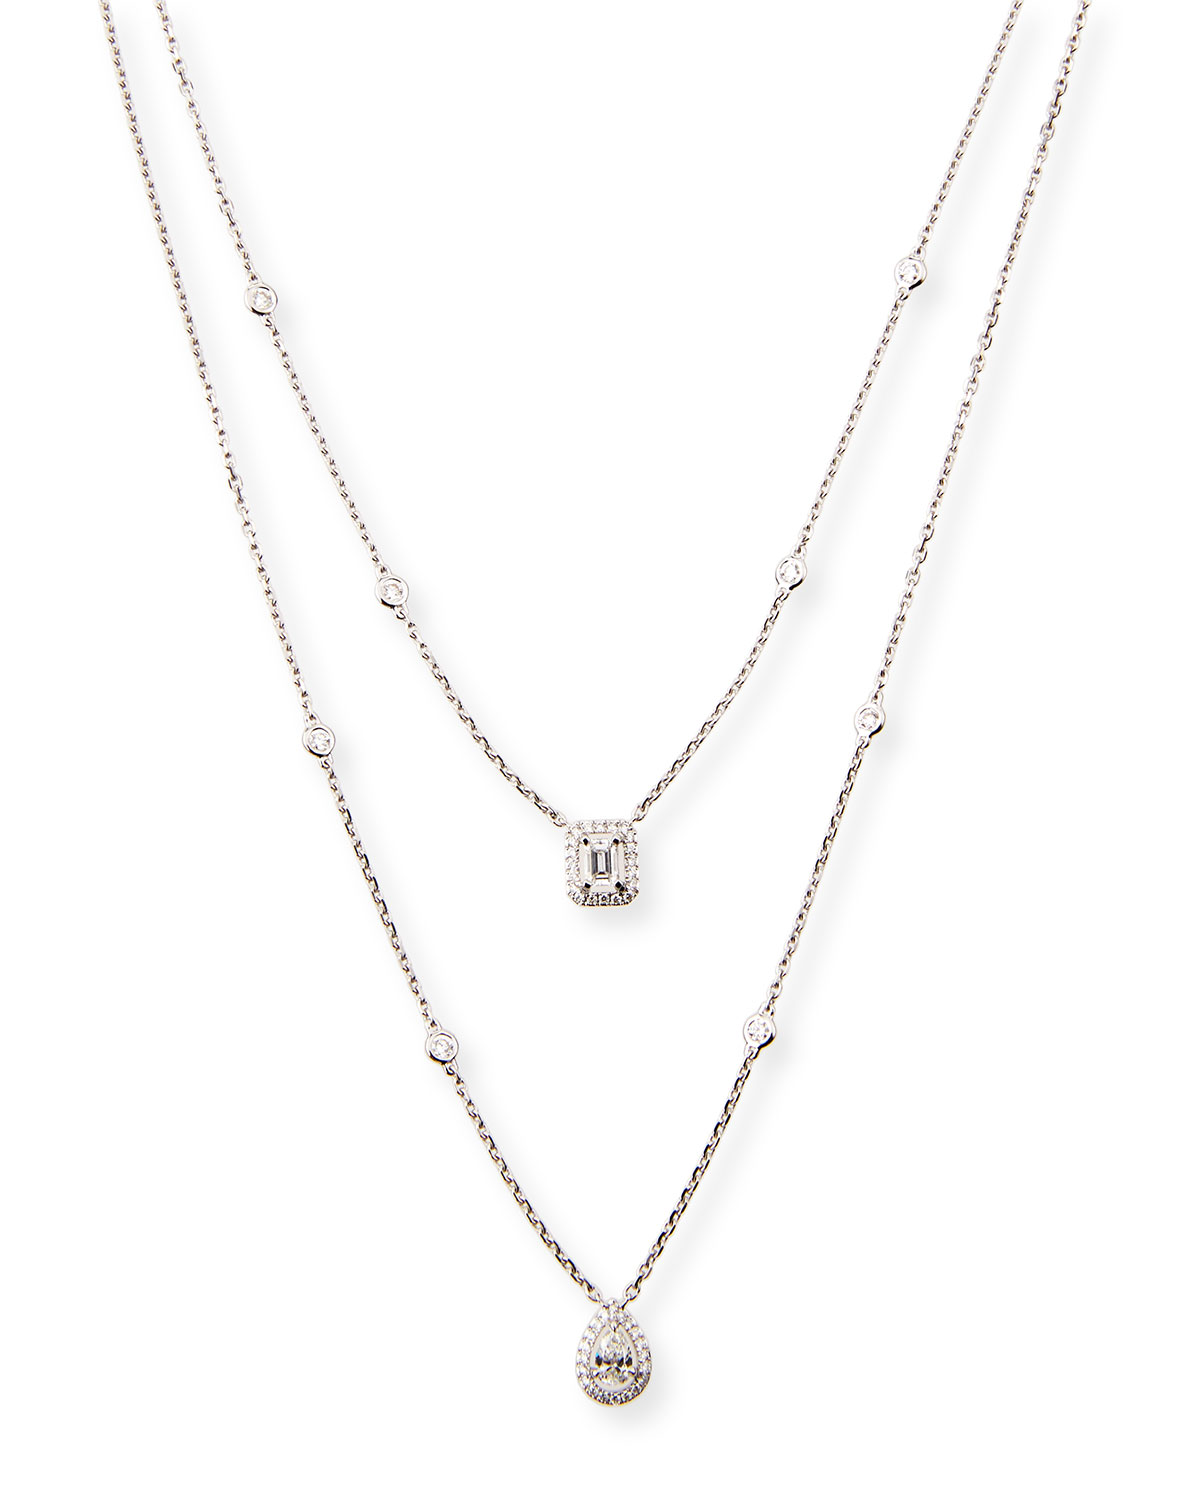 Messika My Twin Two-Strand Diamond Necklace aY6Ibs4A